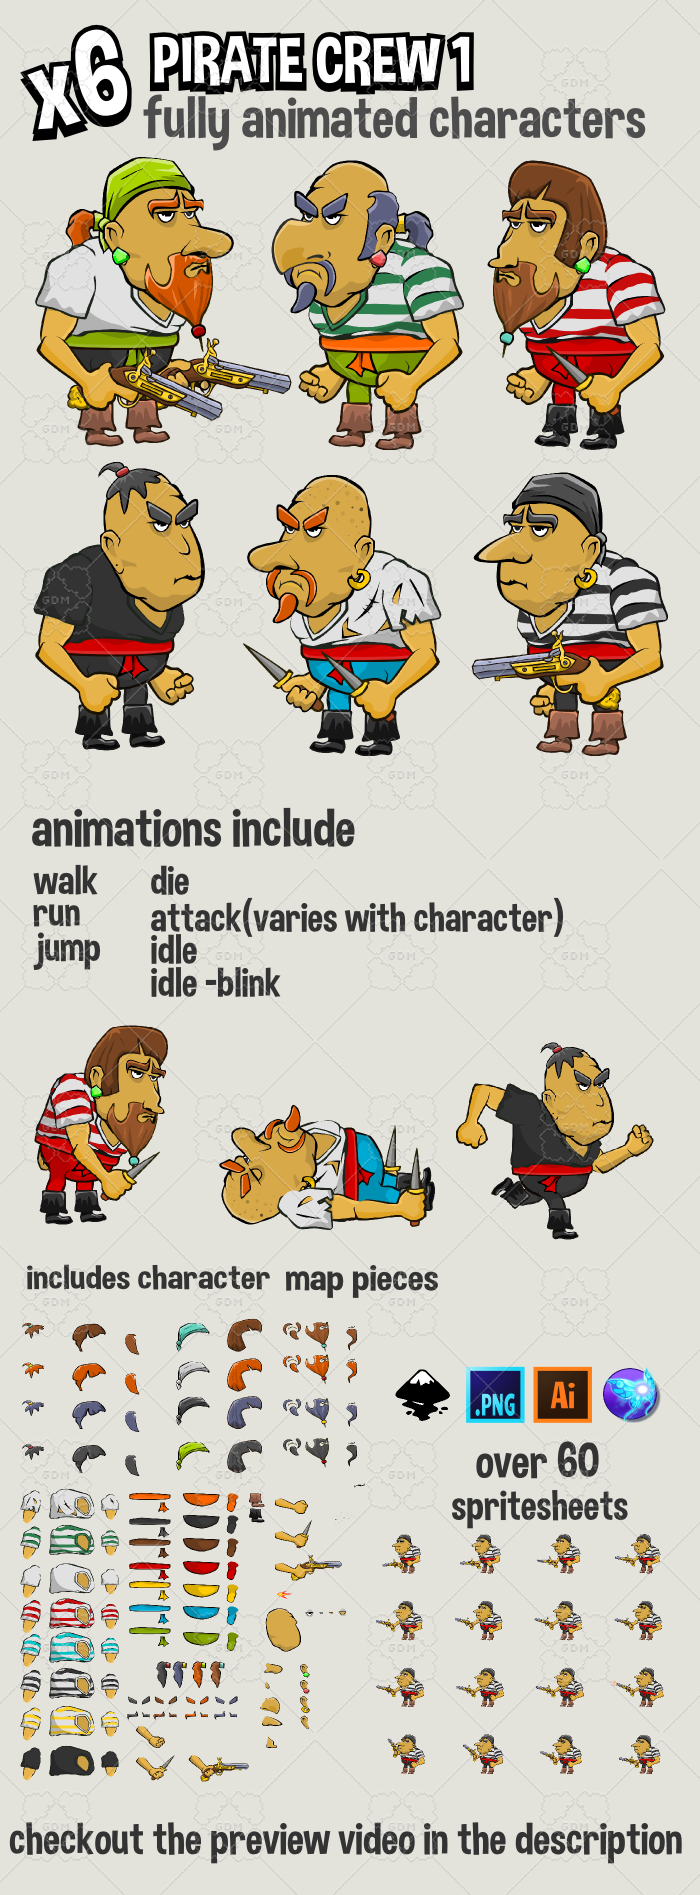 Six animated pirate crew characters